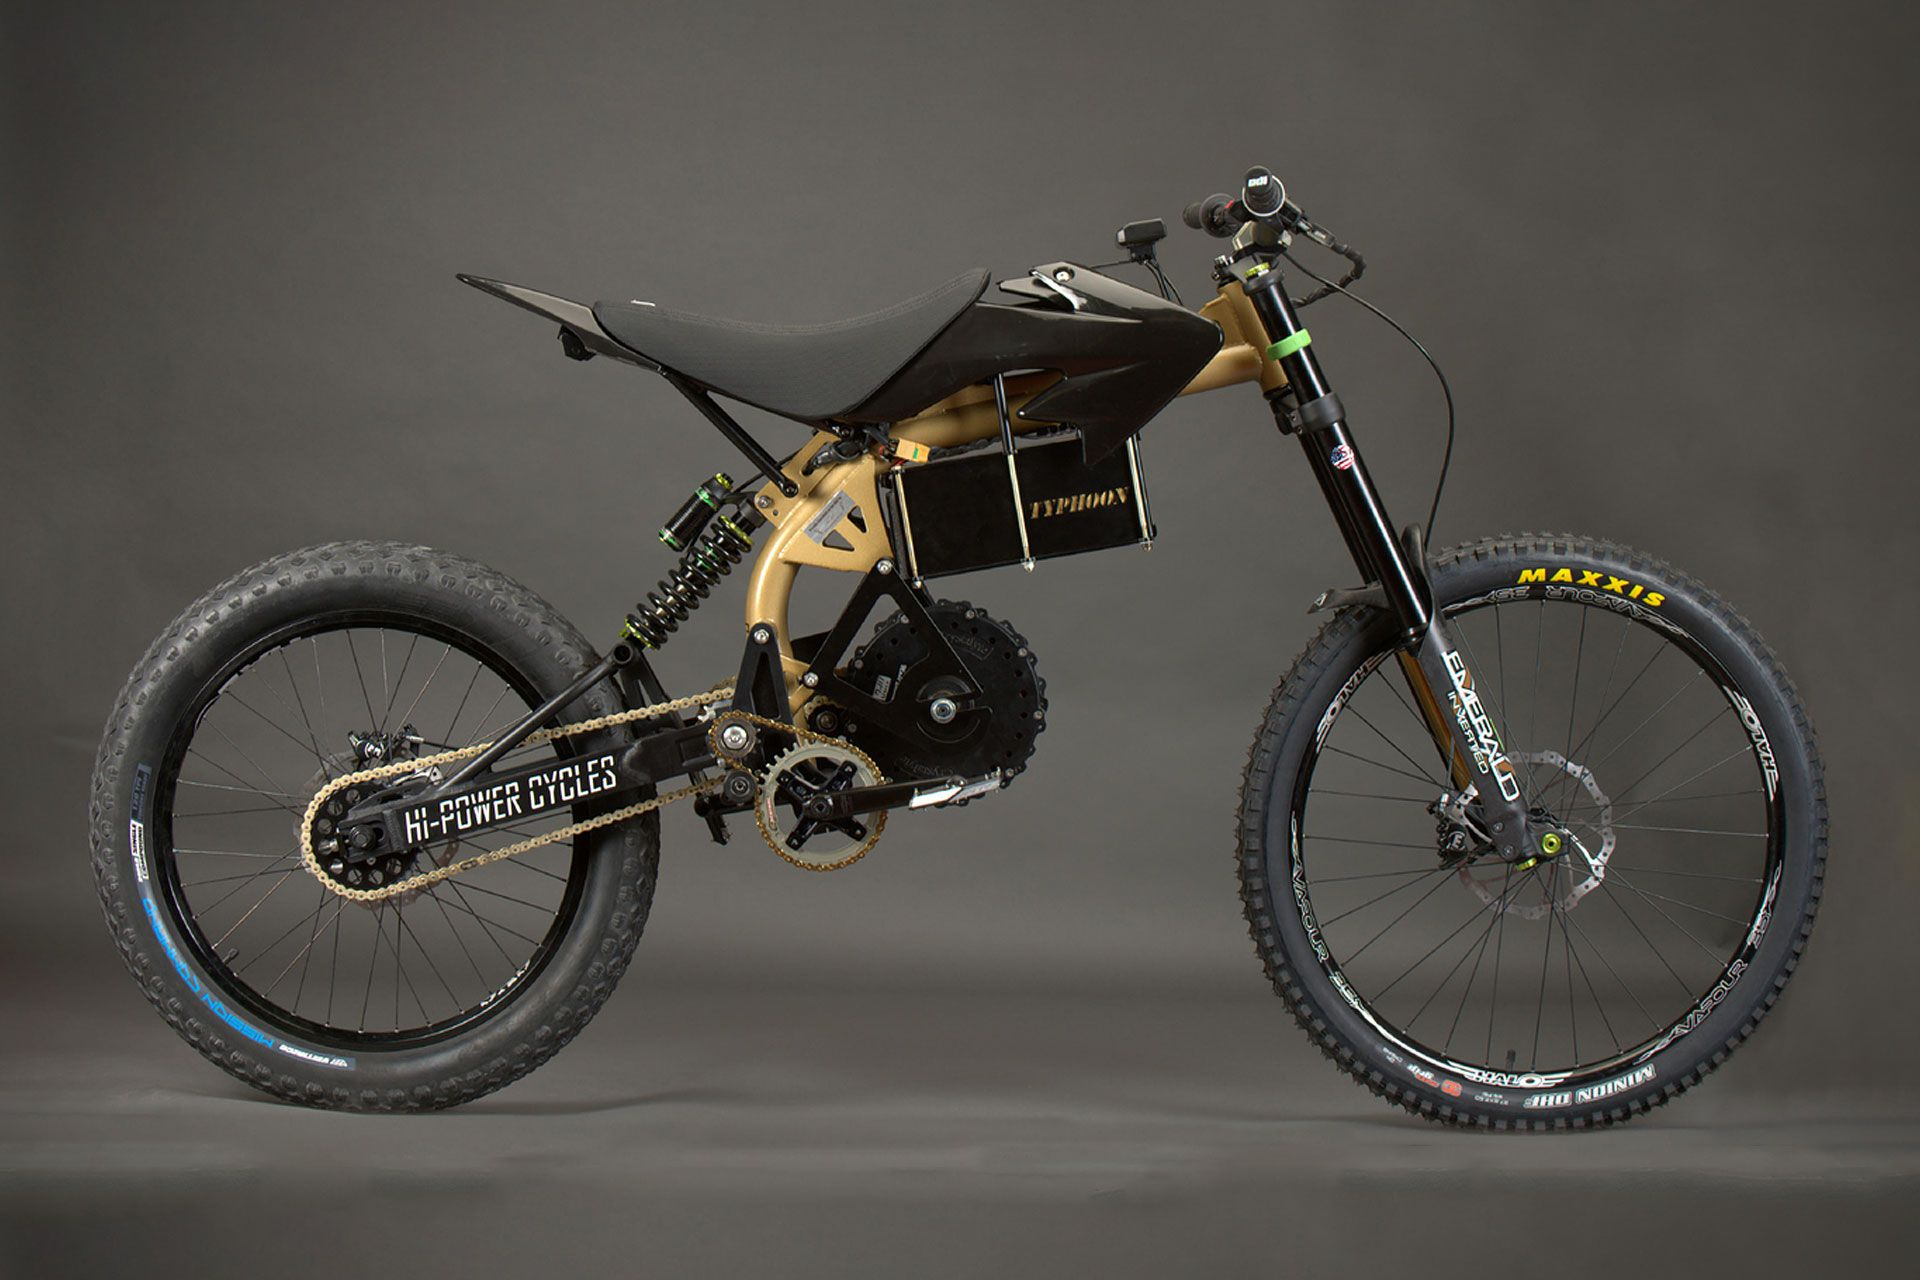 11a38b9ed9f Hi-Power Cycles' Typhoon Pro is an offroad juggernaut, ready to tackle any  terrain you can throw at it. Based on the backbone frame from the base  model, ...